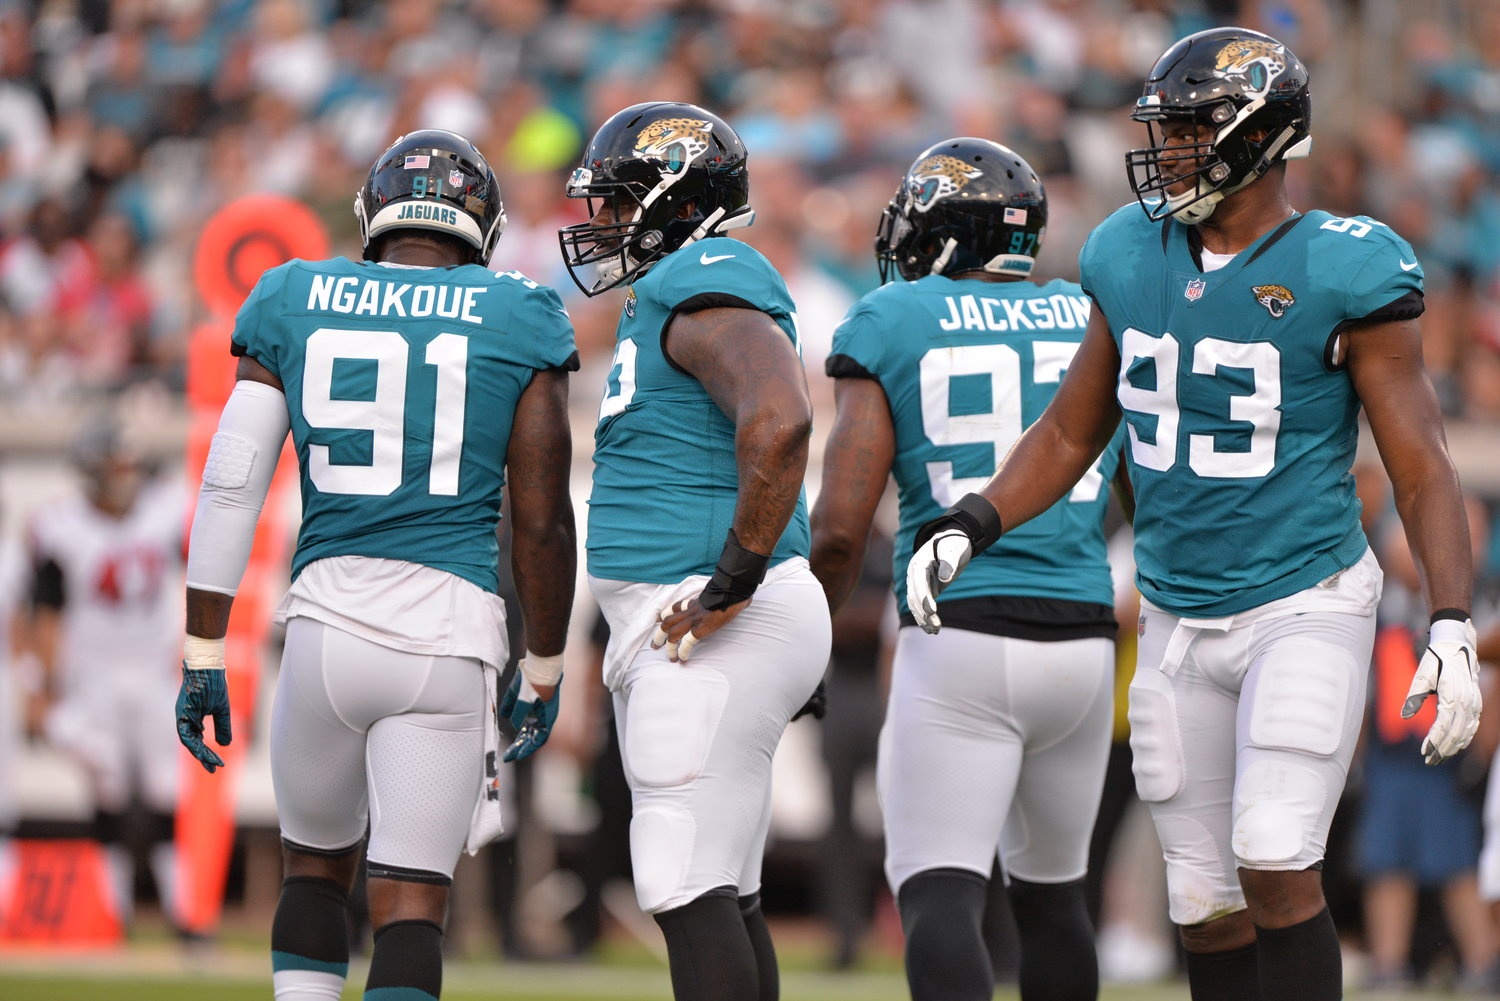 The Jaguars open the season Sunday against the Indianapolis Colts after several big roster moves, including trading away defensive stars Yannick Ngakoue (91) and Calais Campbell  (93).